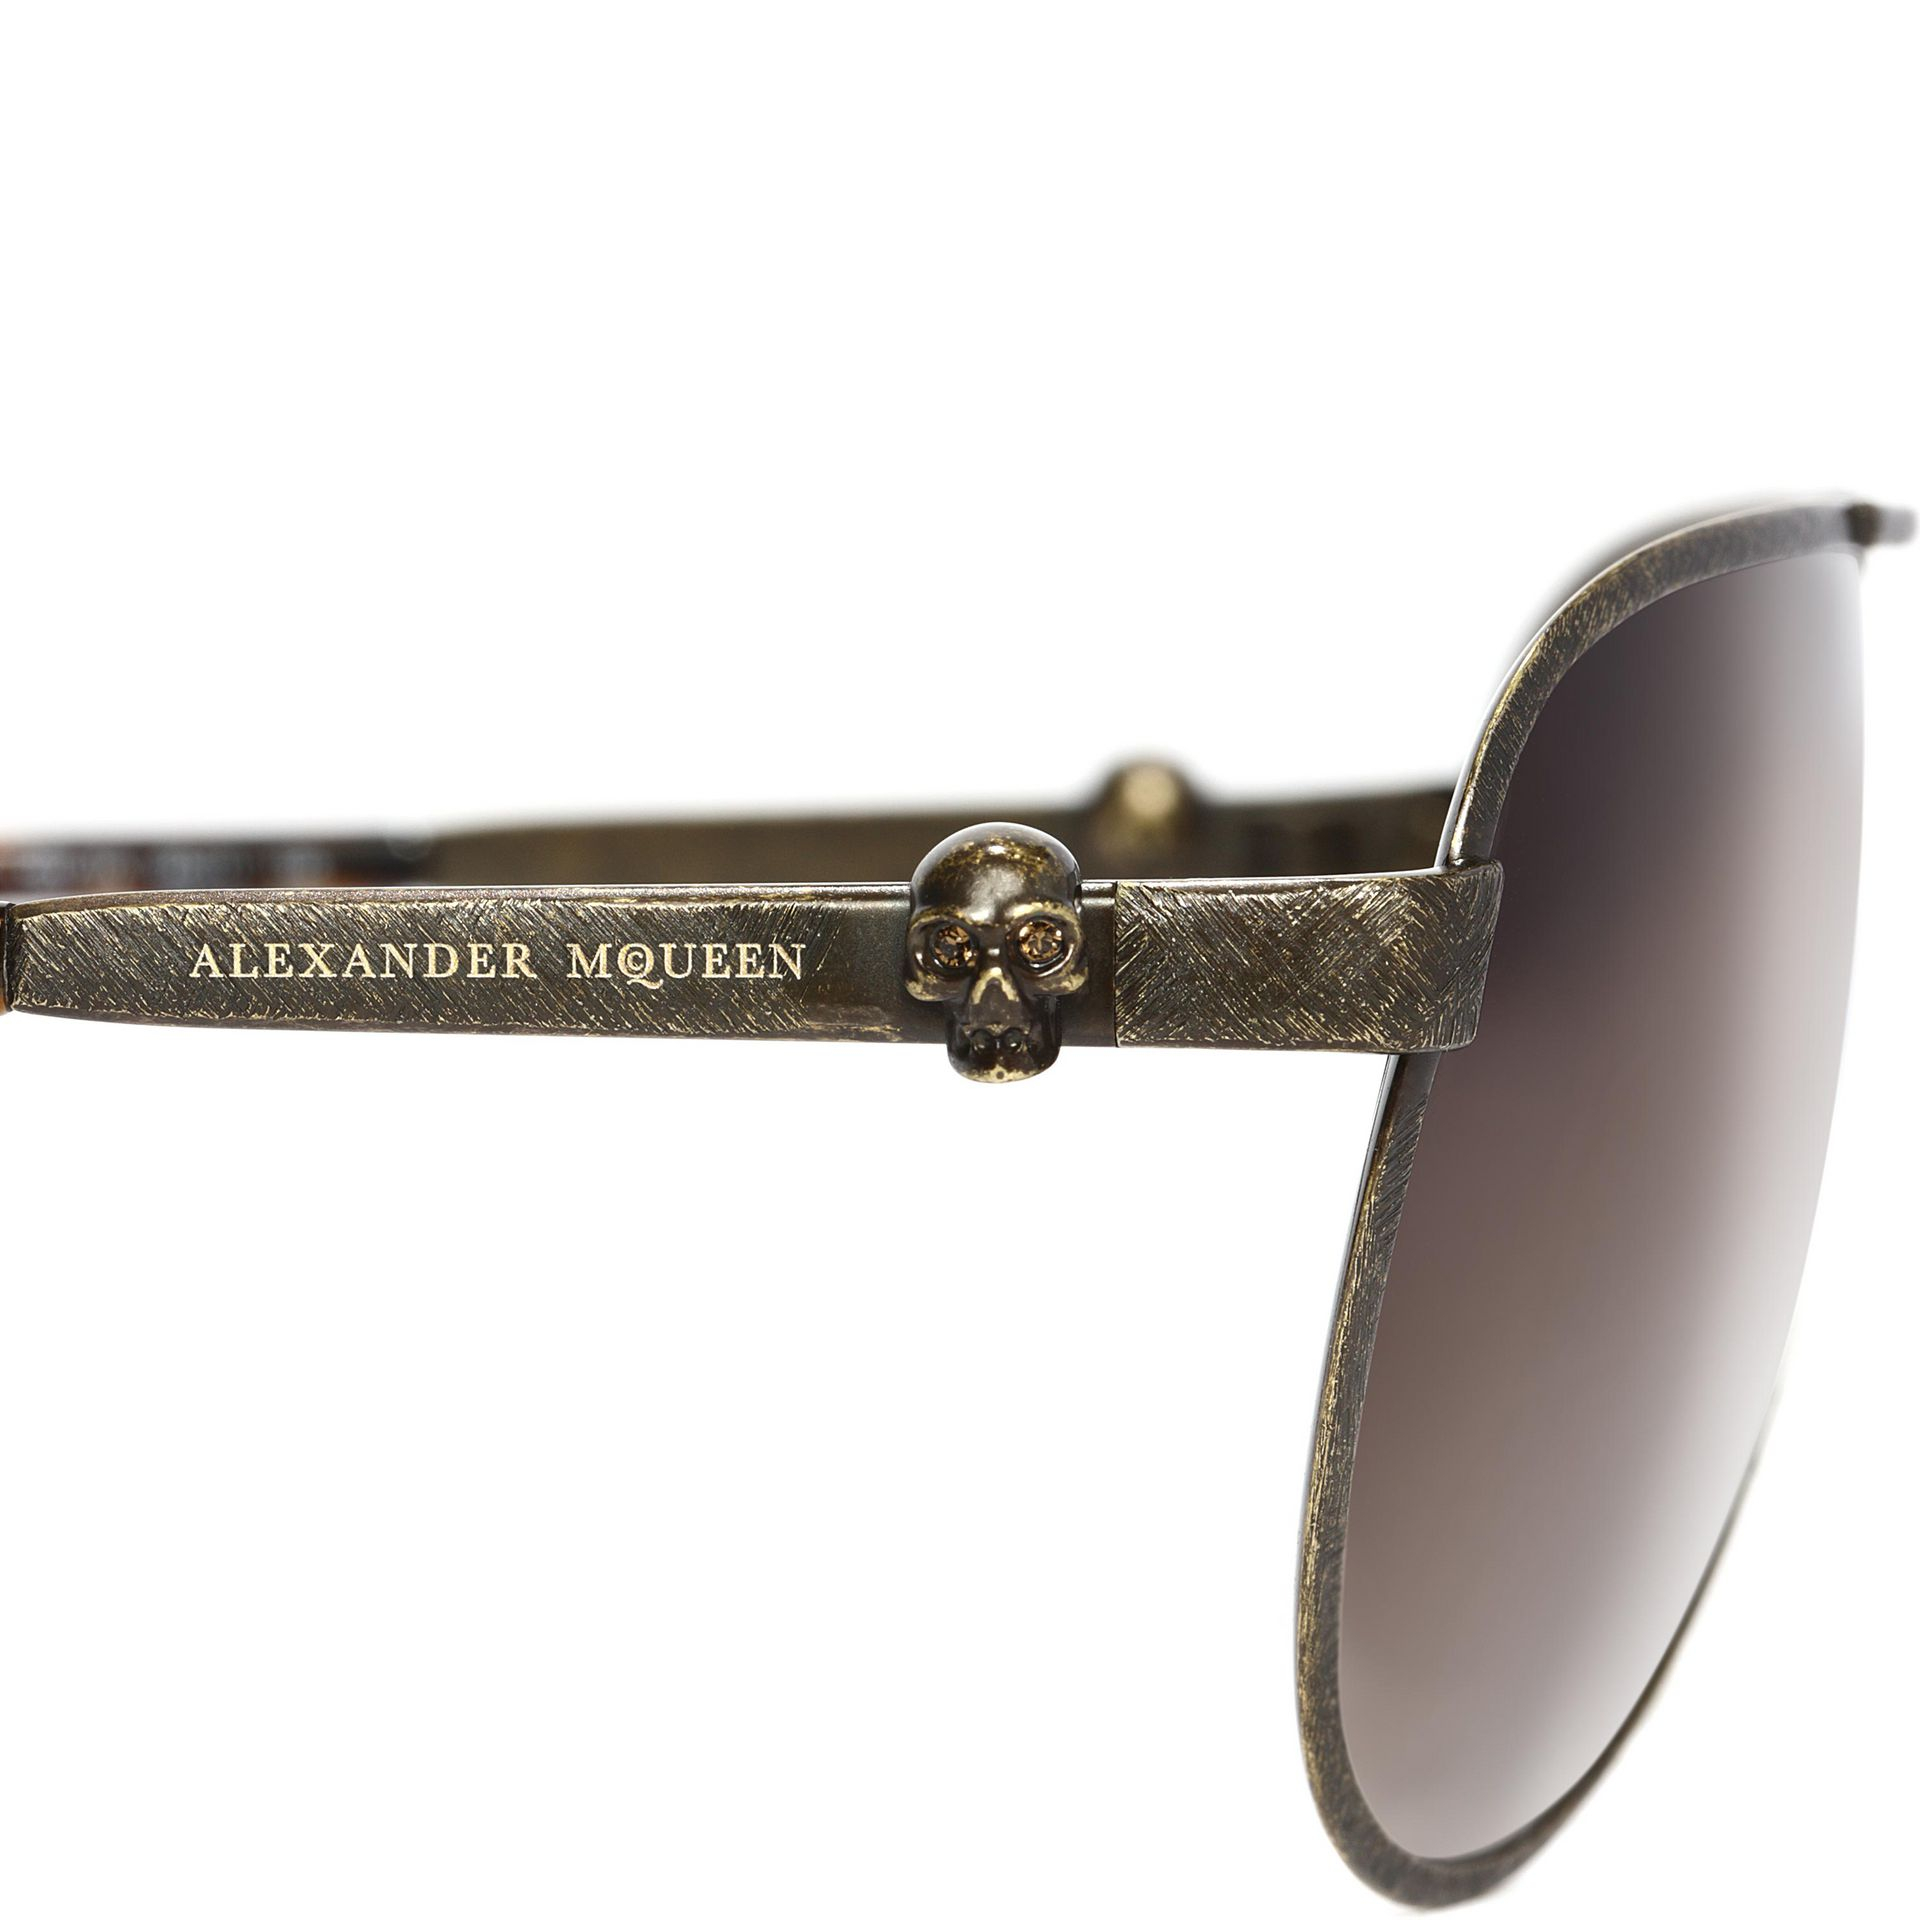 Mens Alexander Mcqueen Sunglasses  alexander mcqueen metallic skull pilot sunglasses in brown for men